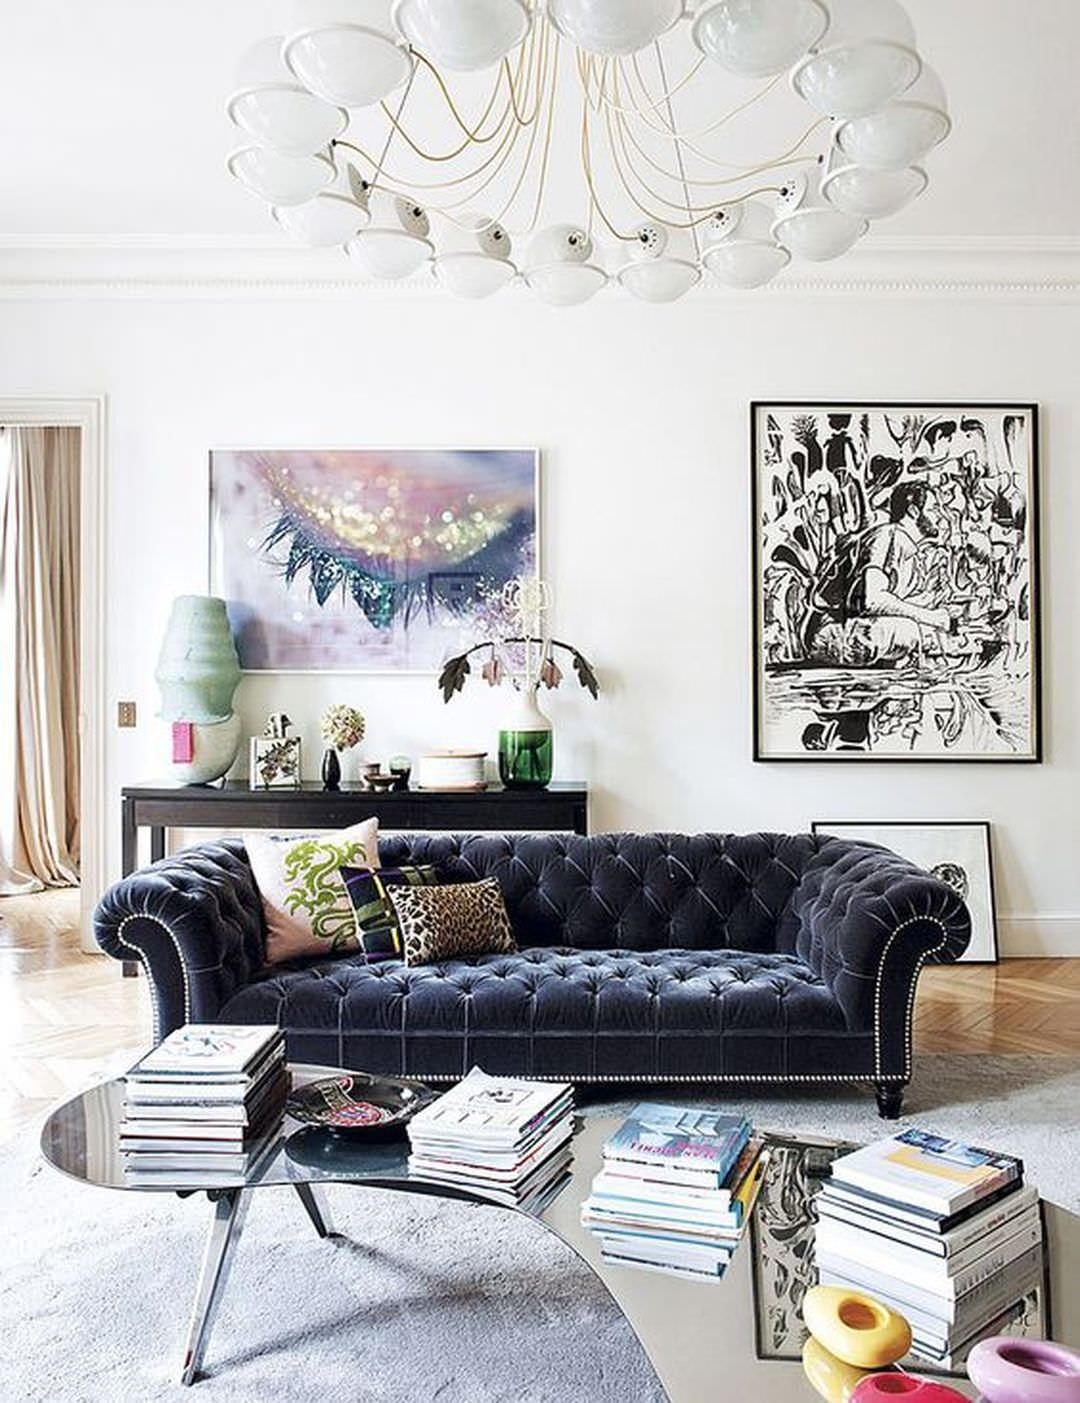 23 Asian Inspired Living Room Decor | Room decor, Room and Living spaces